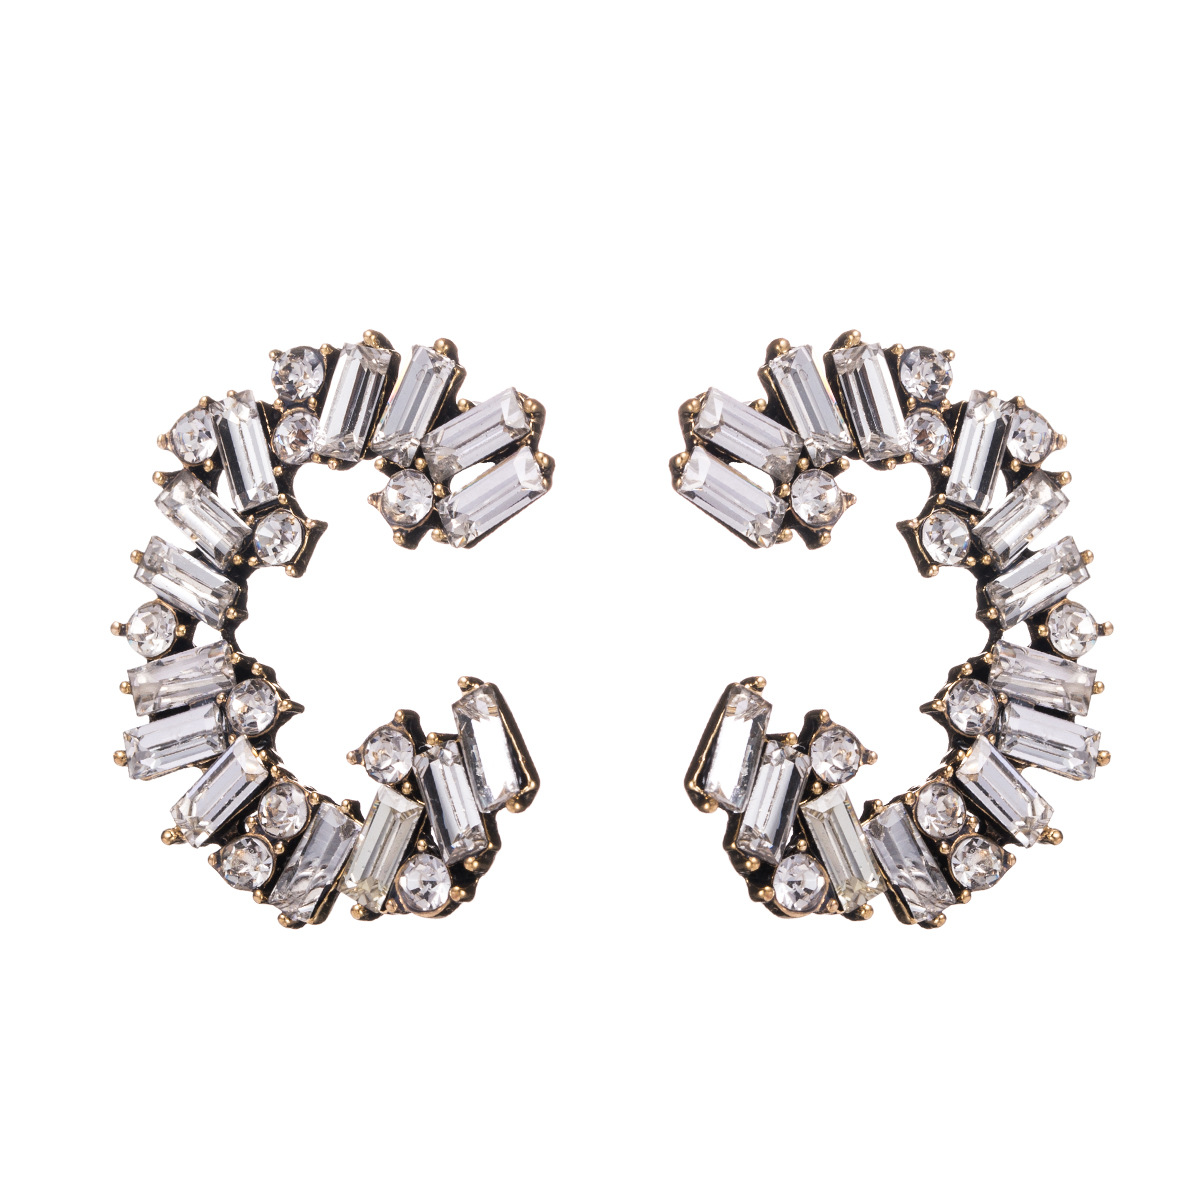 C type alloy diamond rhinestone full diamond earrings female earrings NHJE176137